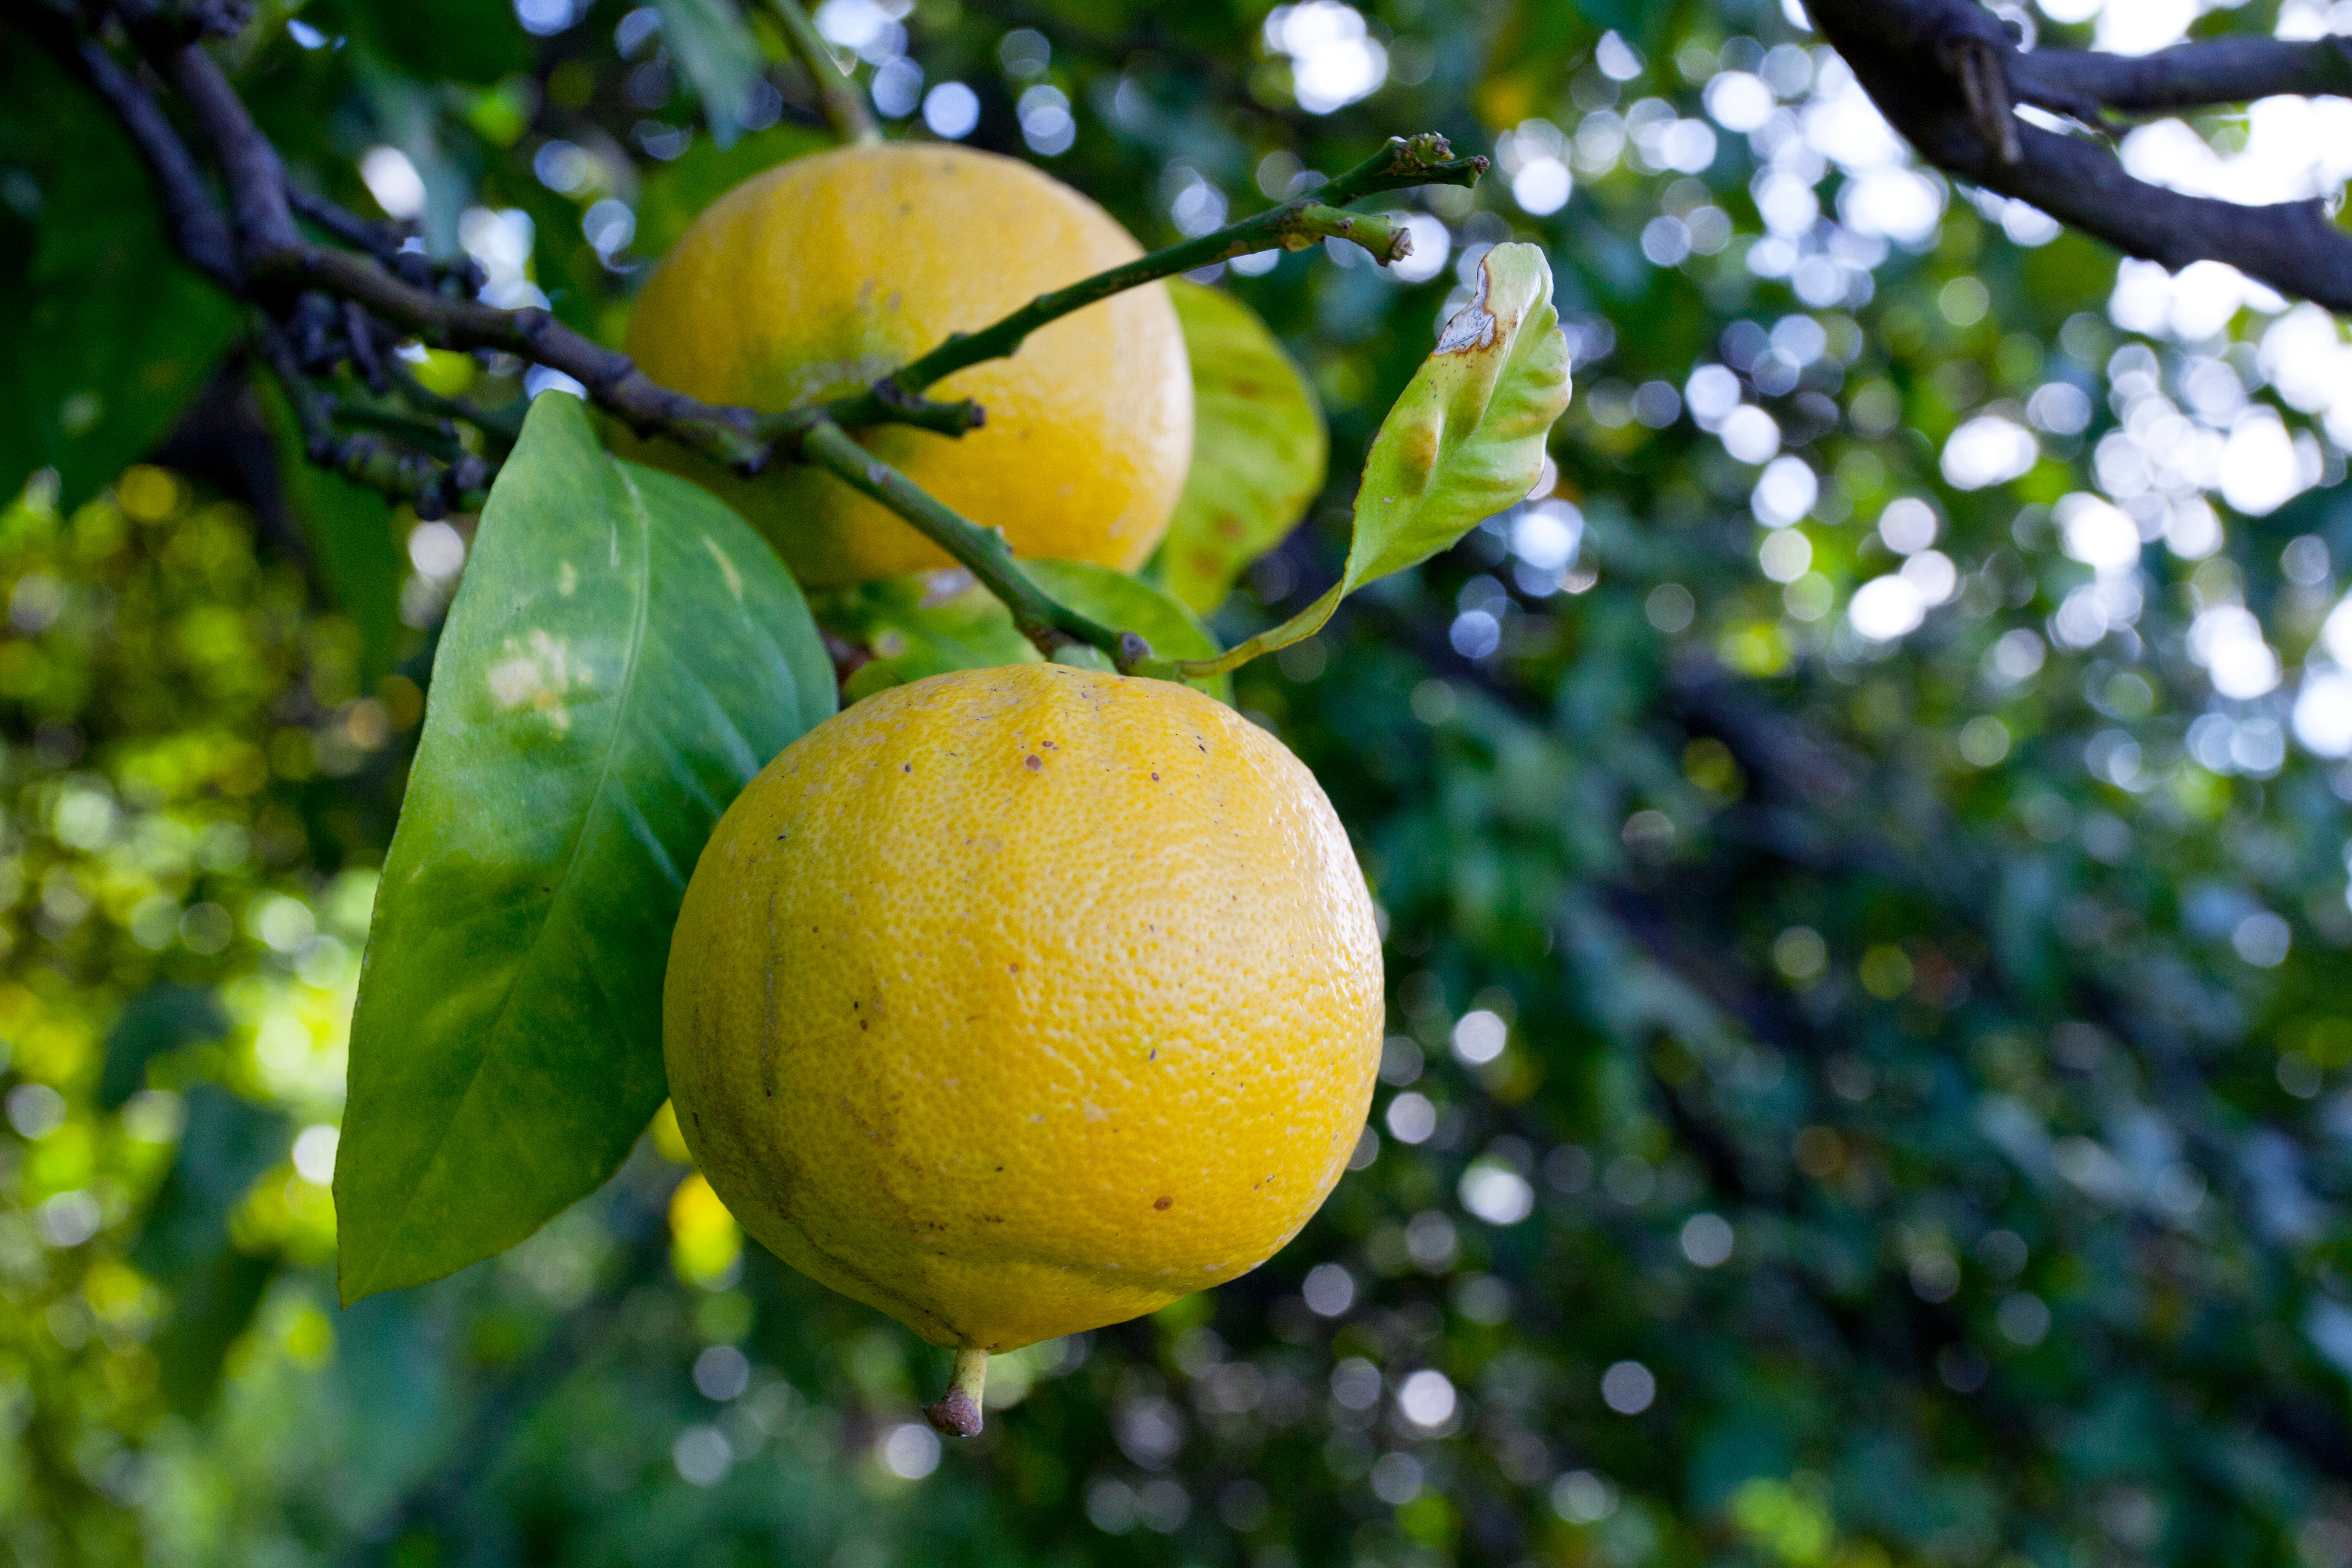 Photo taken by Alan Brown, CSO/Owner, visiting our grapefruit grower's groves in Italy